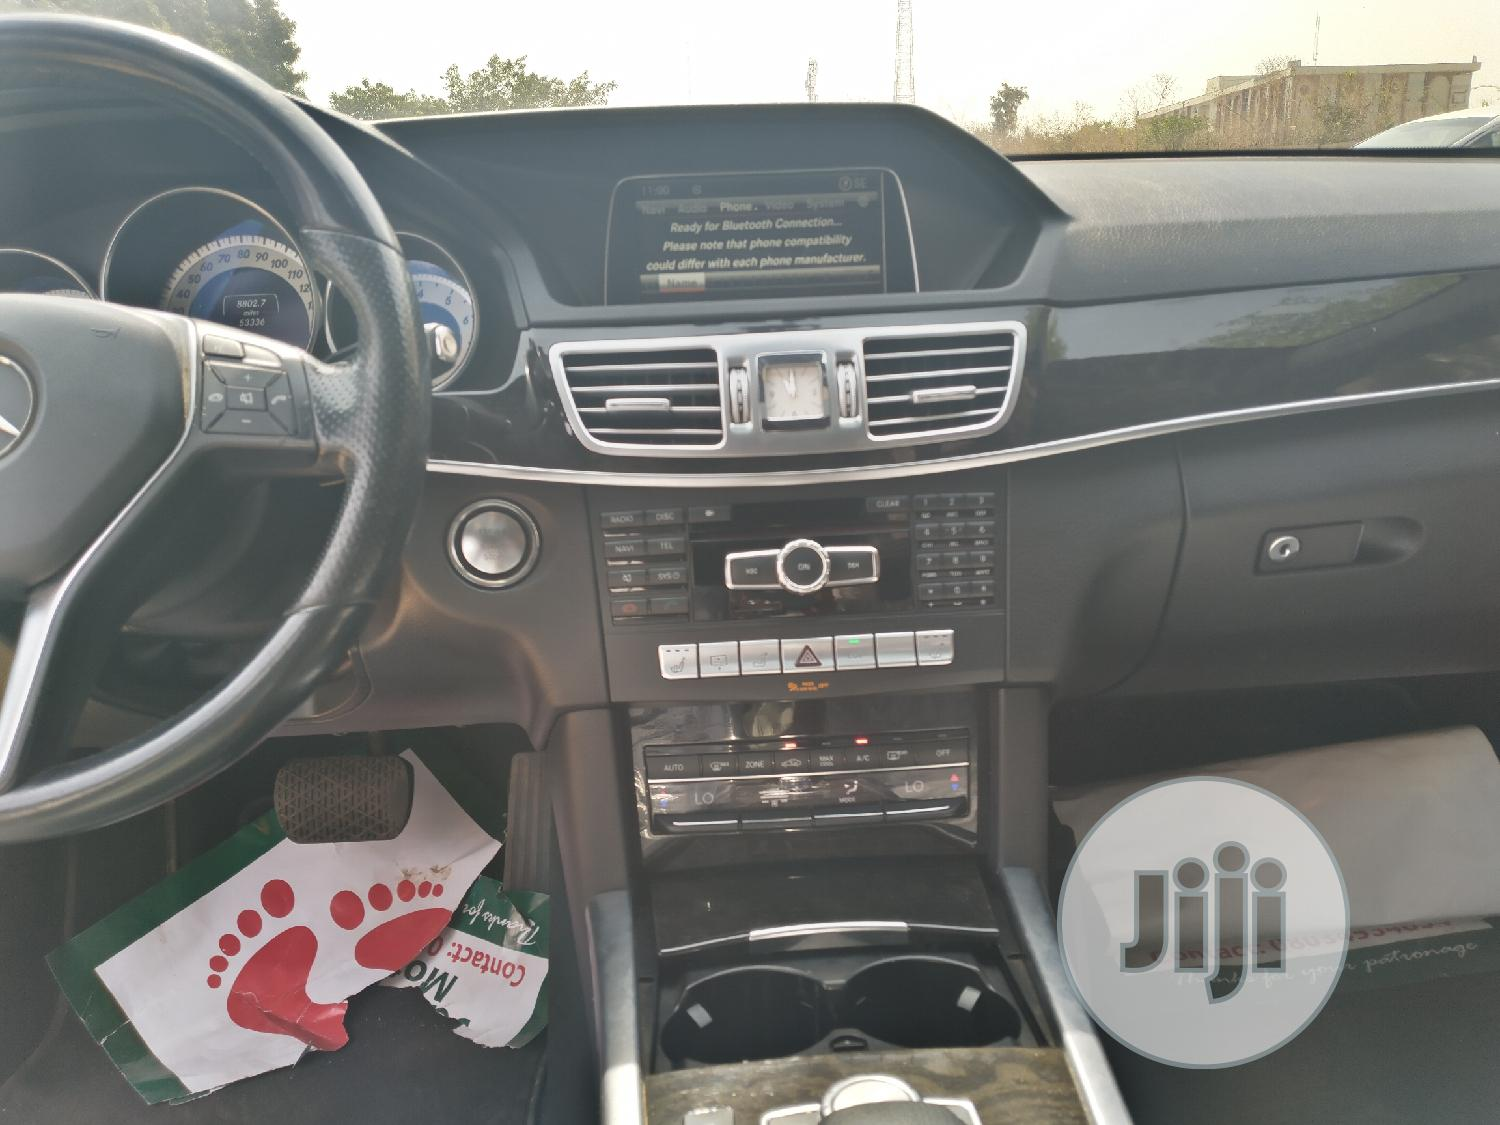 Mercedes-Benz E350 2013 Black   Cars for sale in Central Business Dis, Abuja (FCT) State, Nigeria